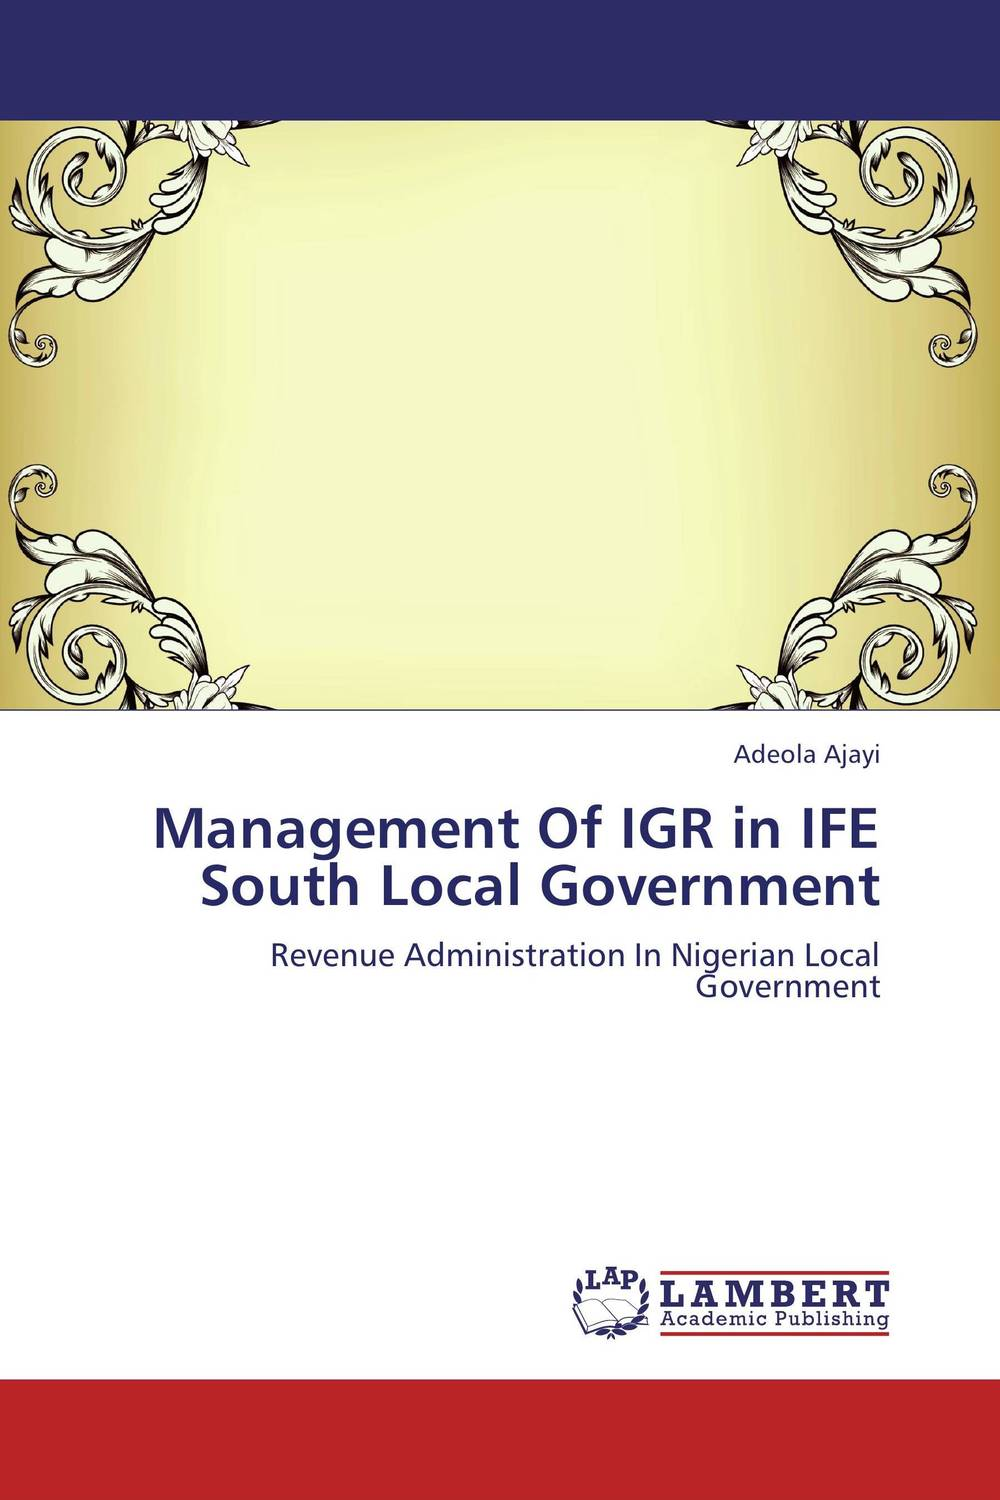 Management Of IGR in IFE South Local Government ways of curbing tax evasion in zimbabwe